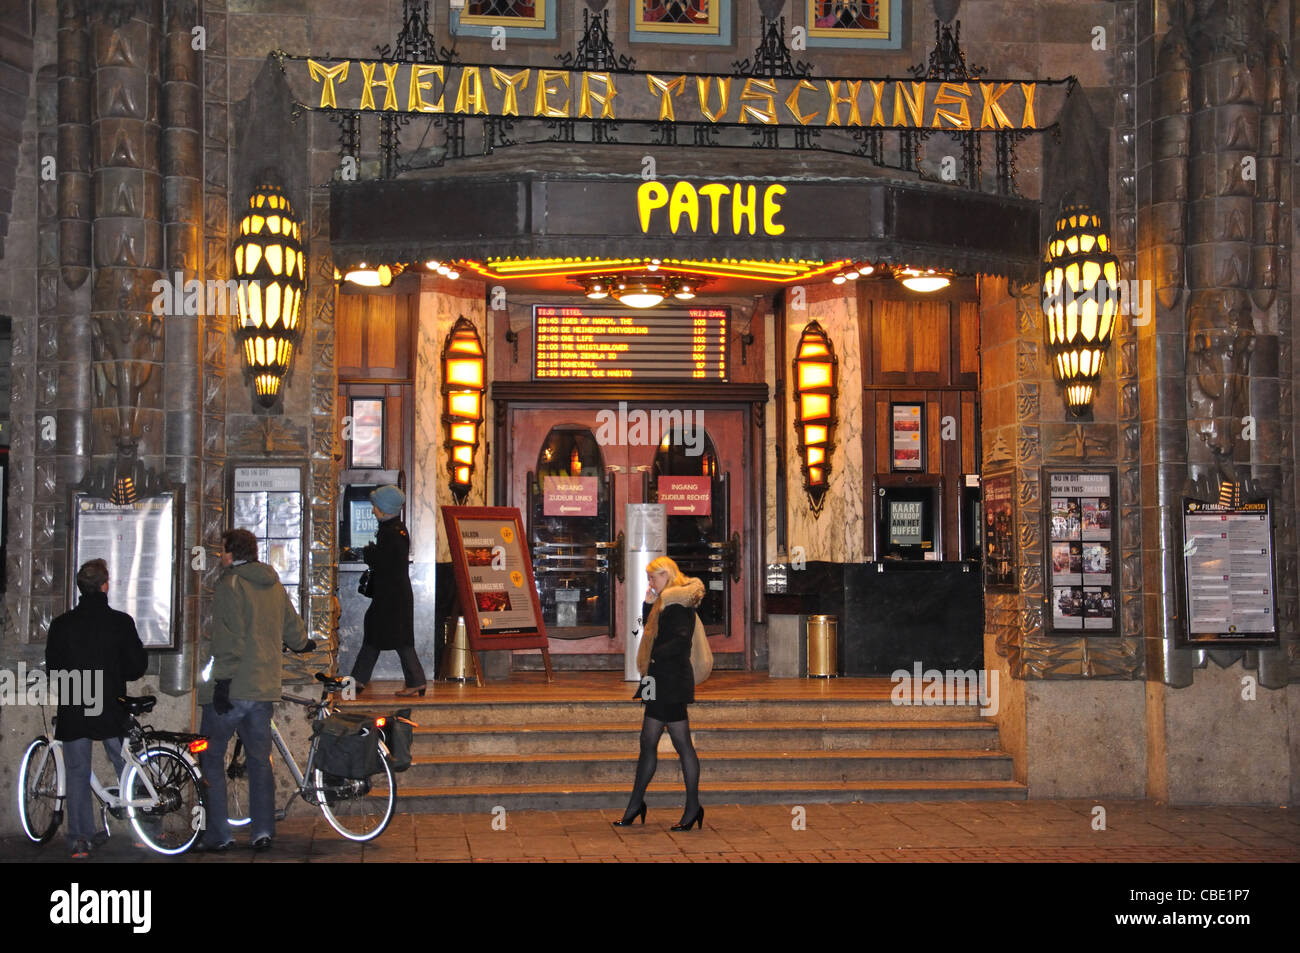 Pathé Tuschinski movie theatre, Reguliersbreestraat, Amsterdam, Noord-Holland, Kingdom of the Netherlands - Stock Image